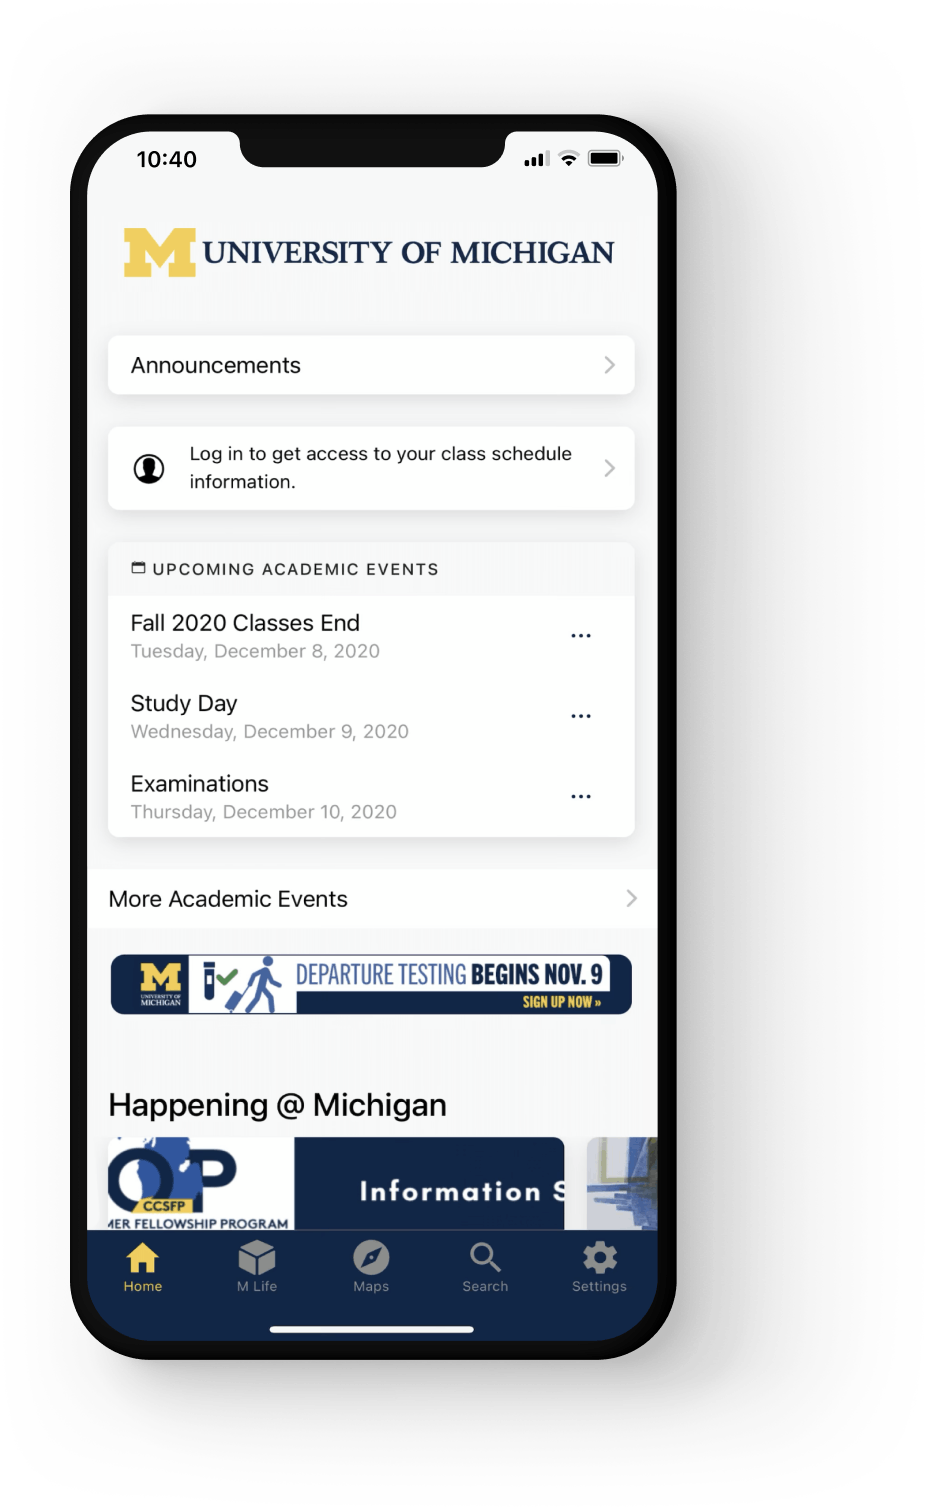 University of Michigan Mobile app